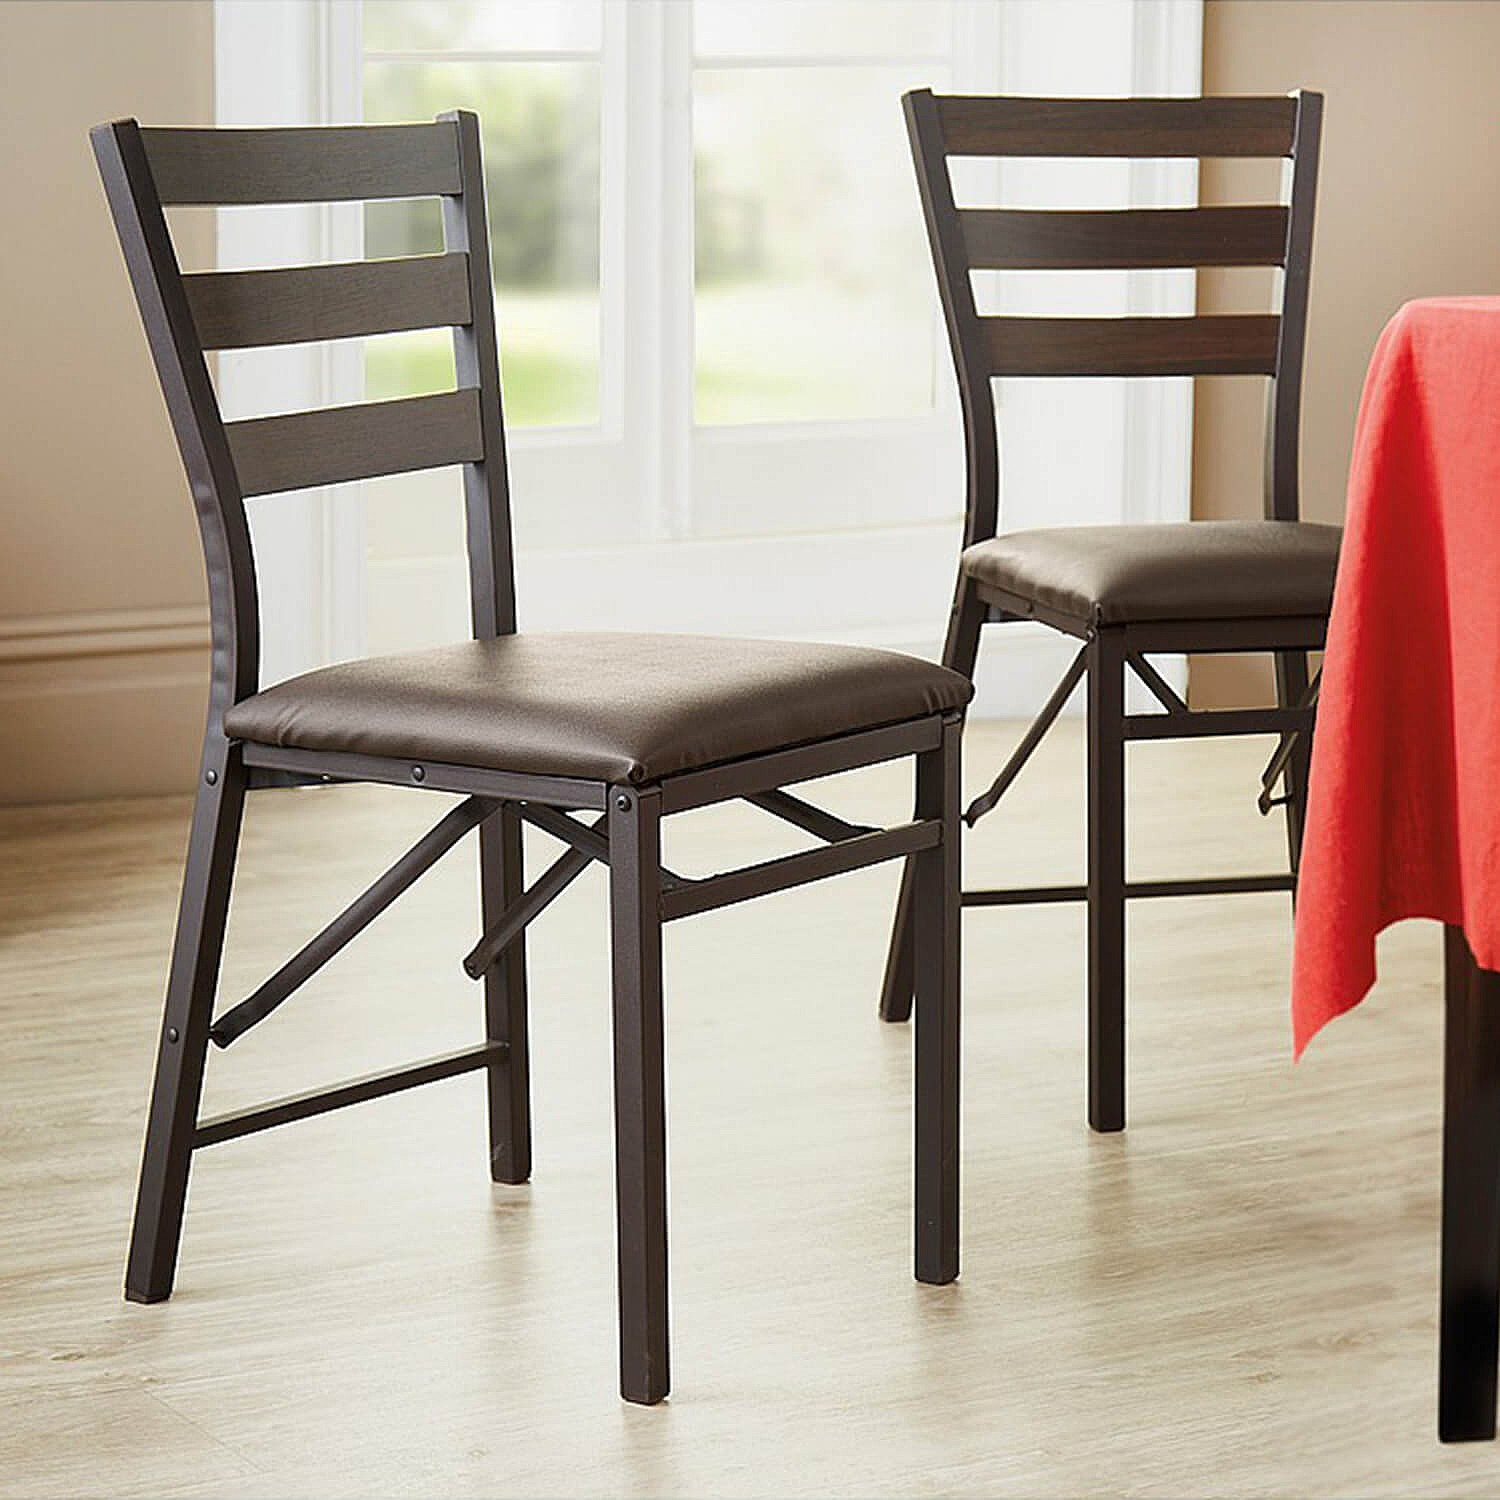 Foldable Dining Chairs Folding Dining Chairs Set Of 2